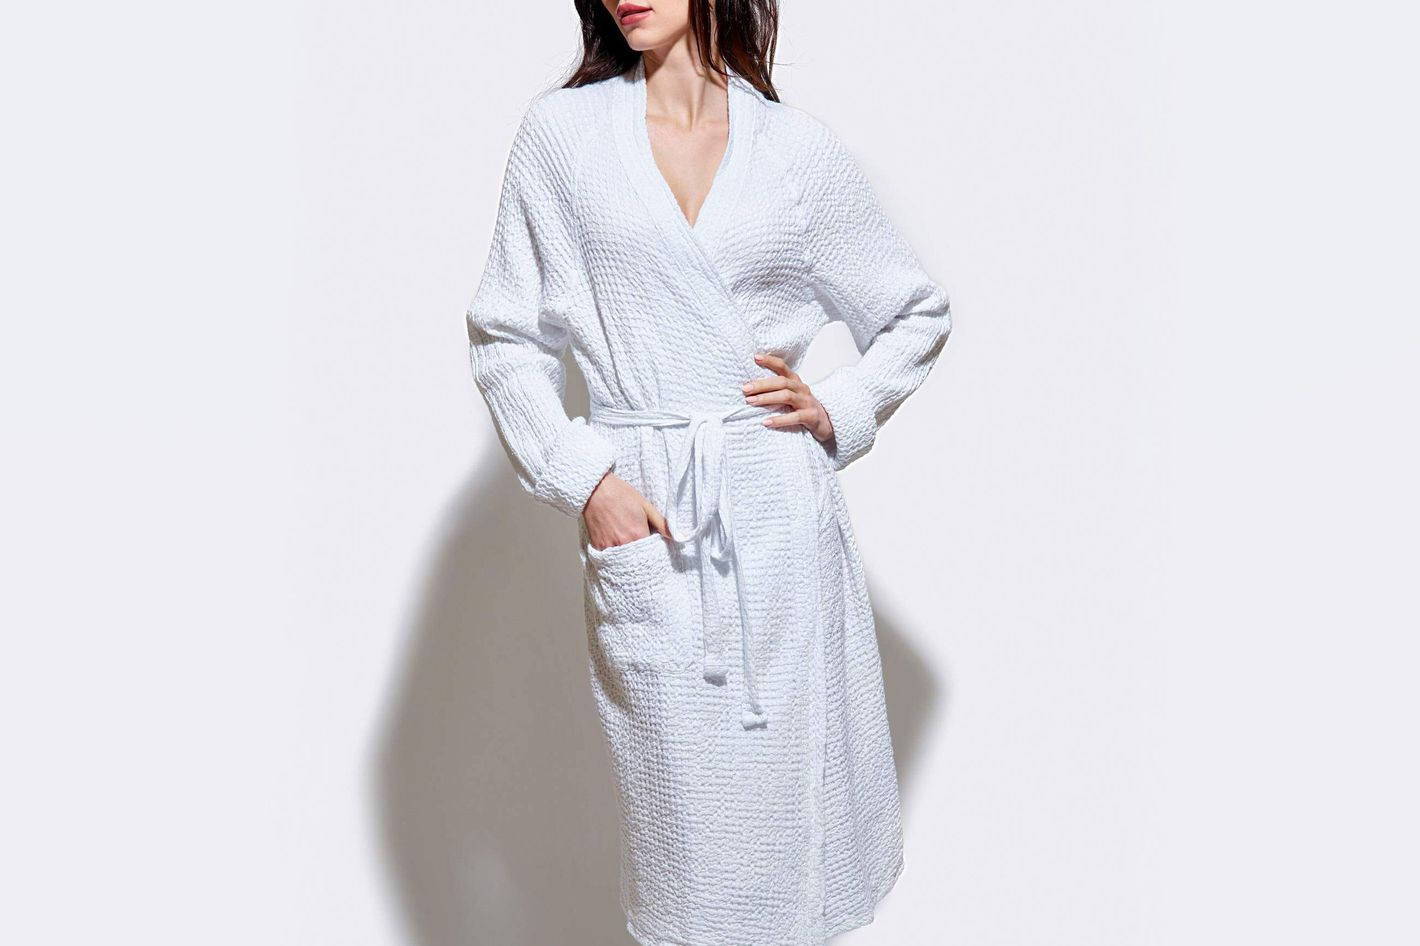 828387a831 15 Best Bathrobes for Women 2018